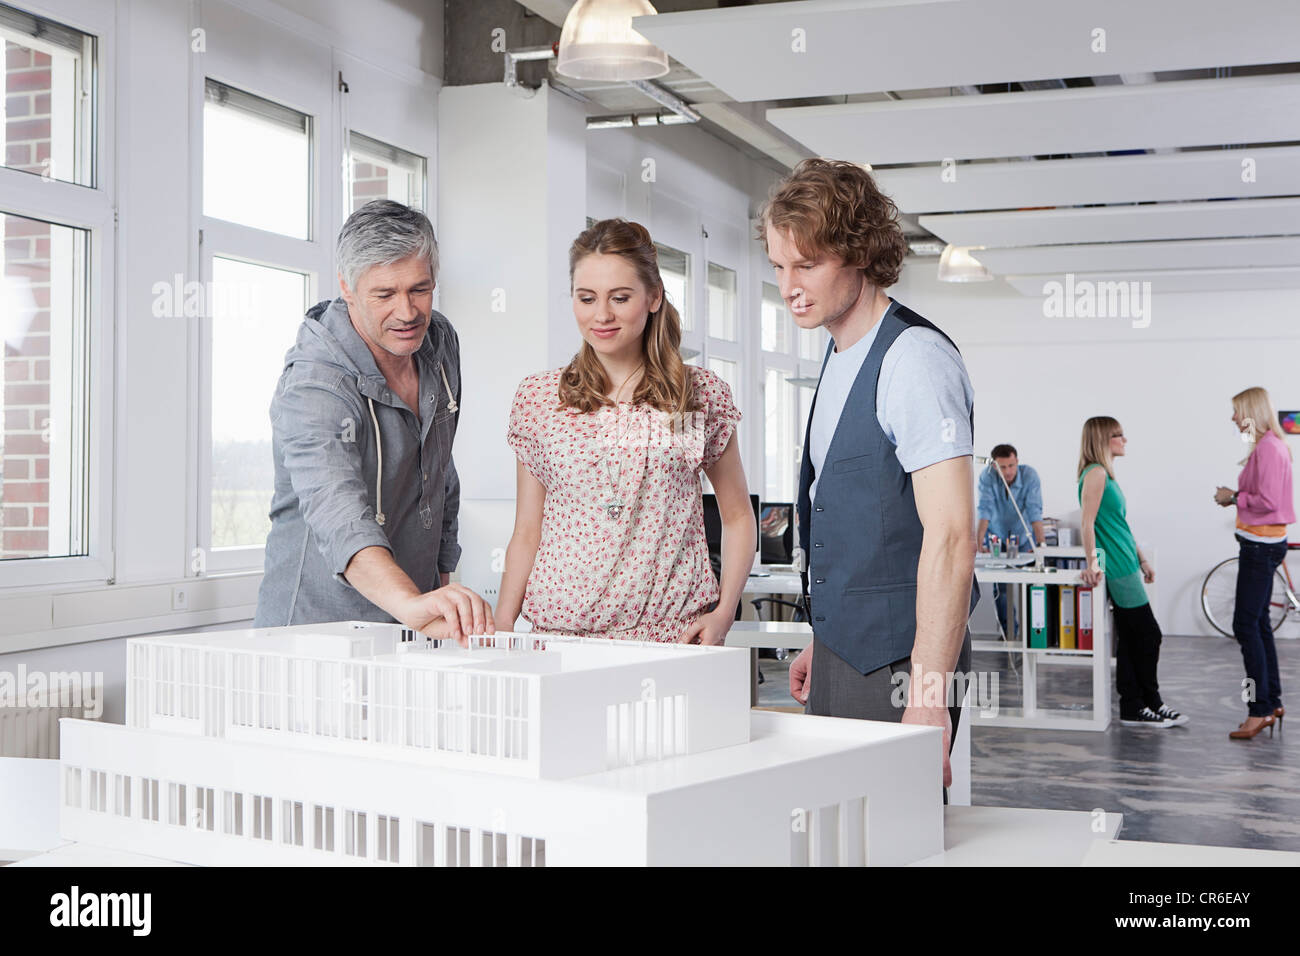 Germany, Bavaria, Munich, Man explaining architectural model to colleagues - Stock Image